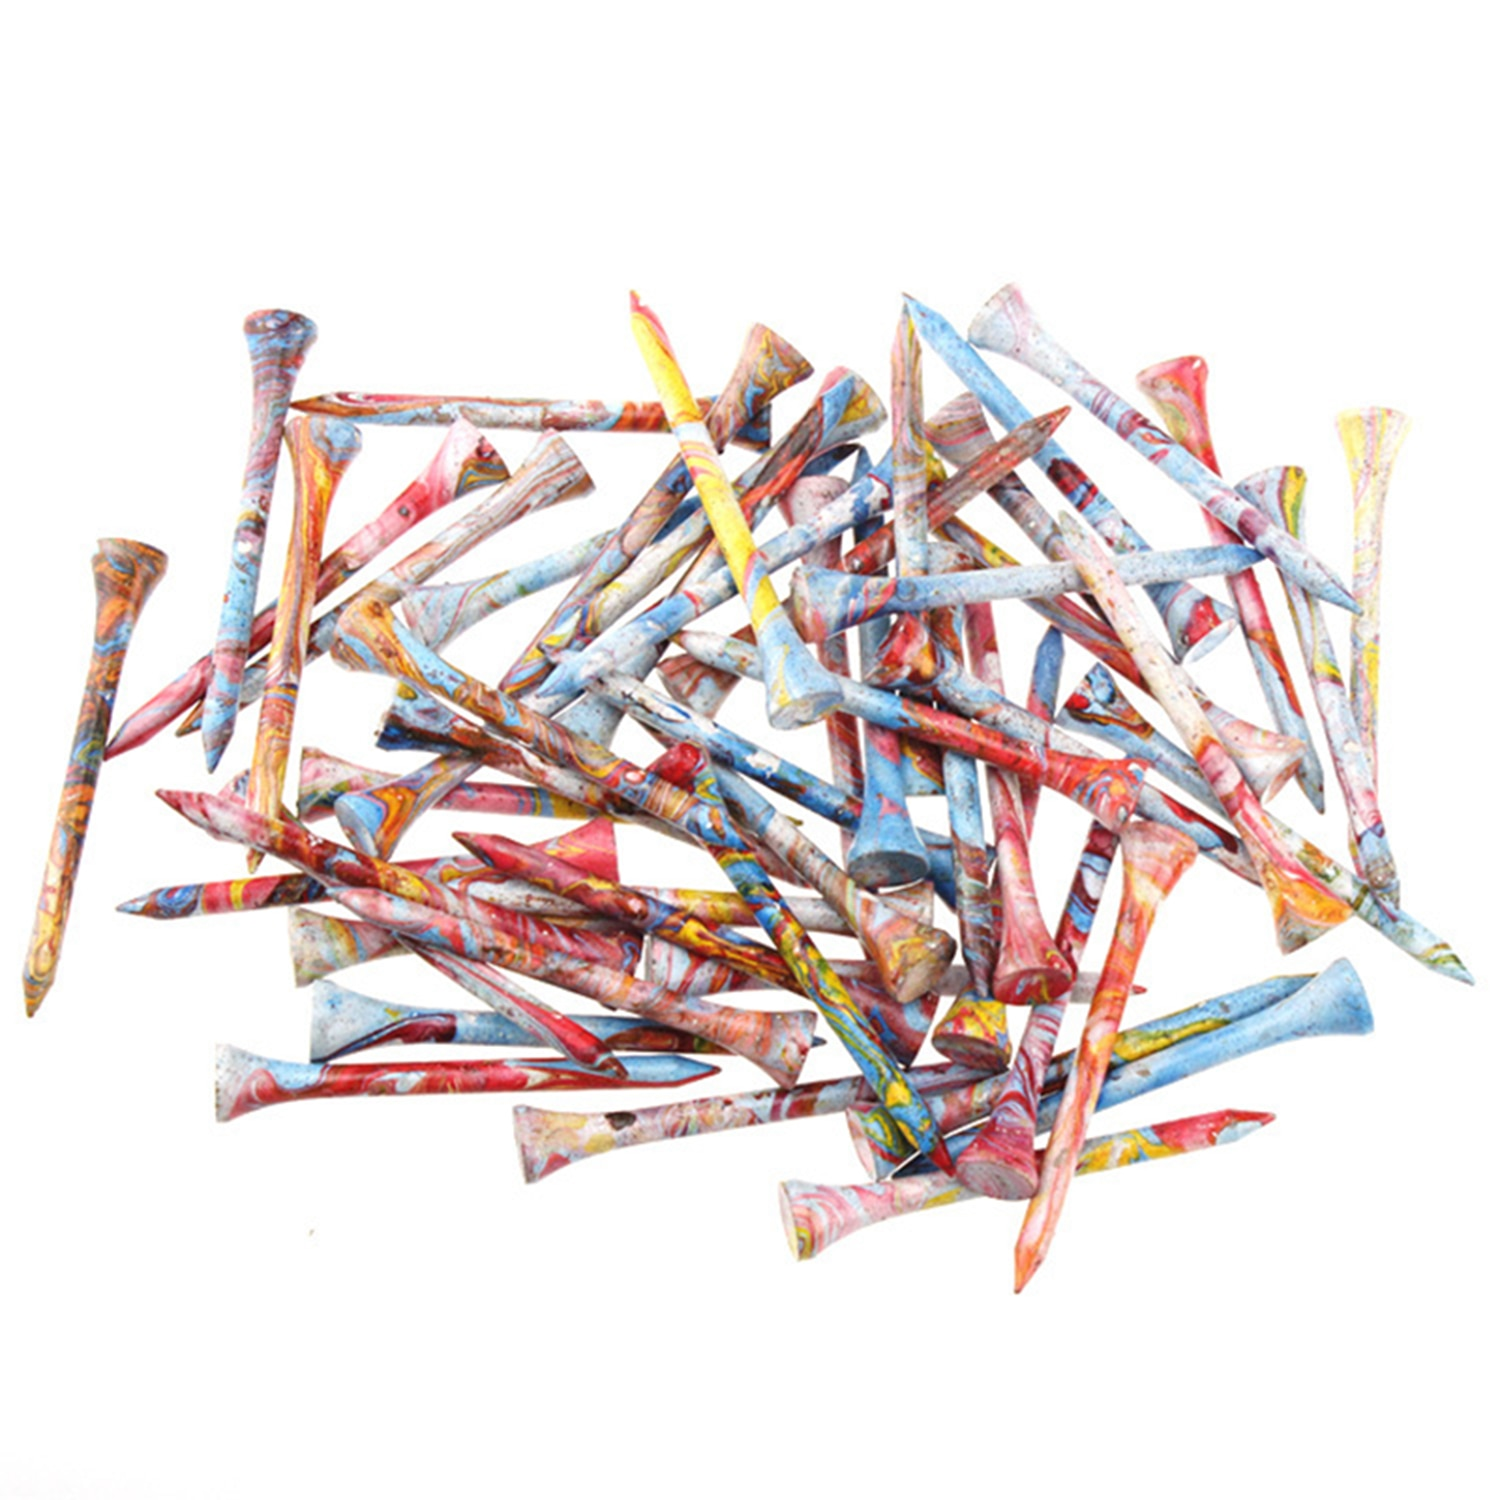 KOFULL 70 MM 100 Pcs Wooden Novelty Golf Tees Wood In Bulk 2 3/4 Inch Colorful Supplies Accessories